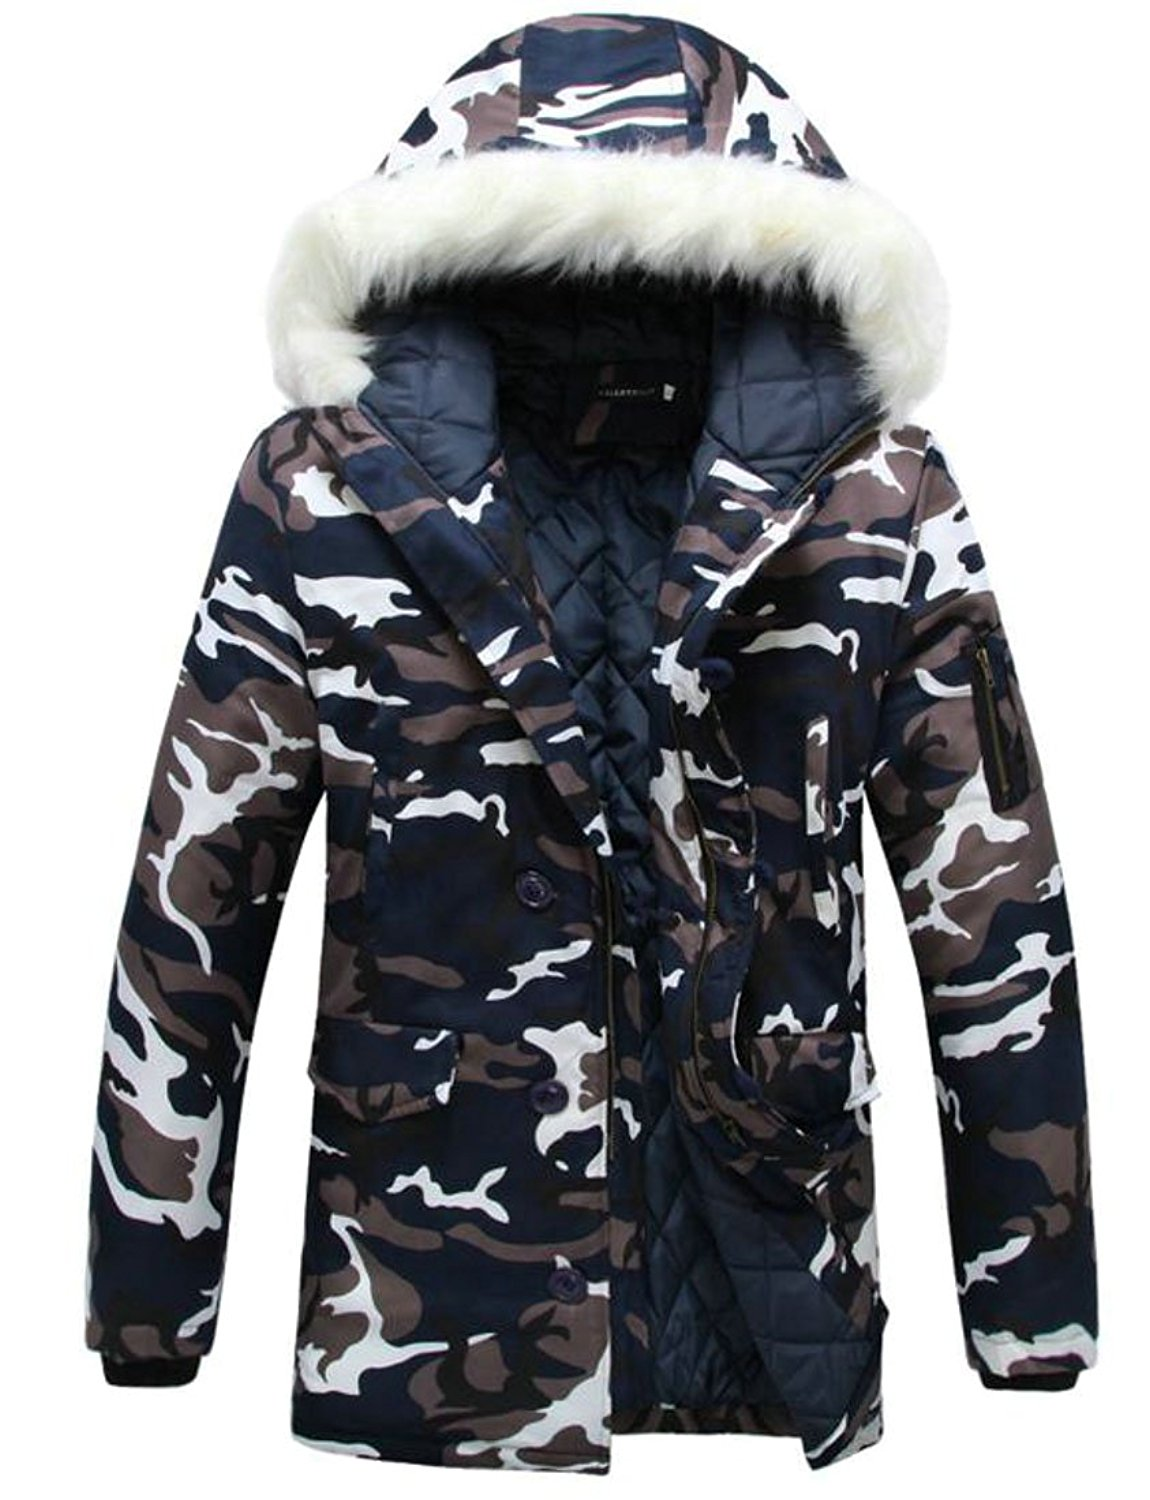 ONTBYB Men Fashion Faux Fur Hooded Puffer Jacket Coat Outdoor Quilted Down Parka